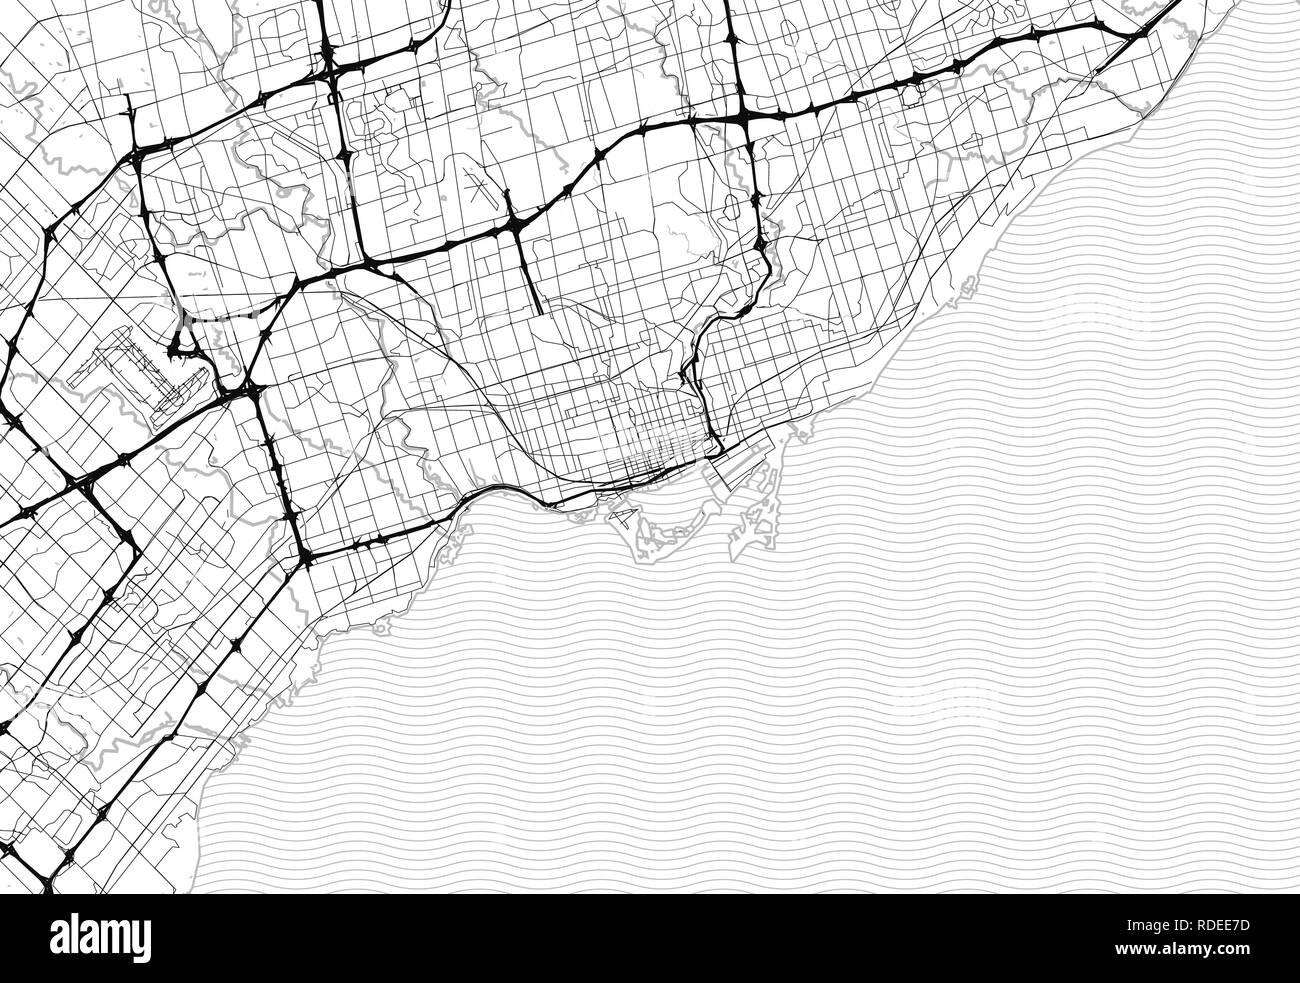 Toronto Canada Water Map Area map of Toronto, Canada. This artmap of Toronto contains